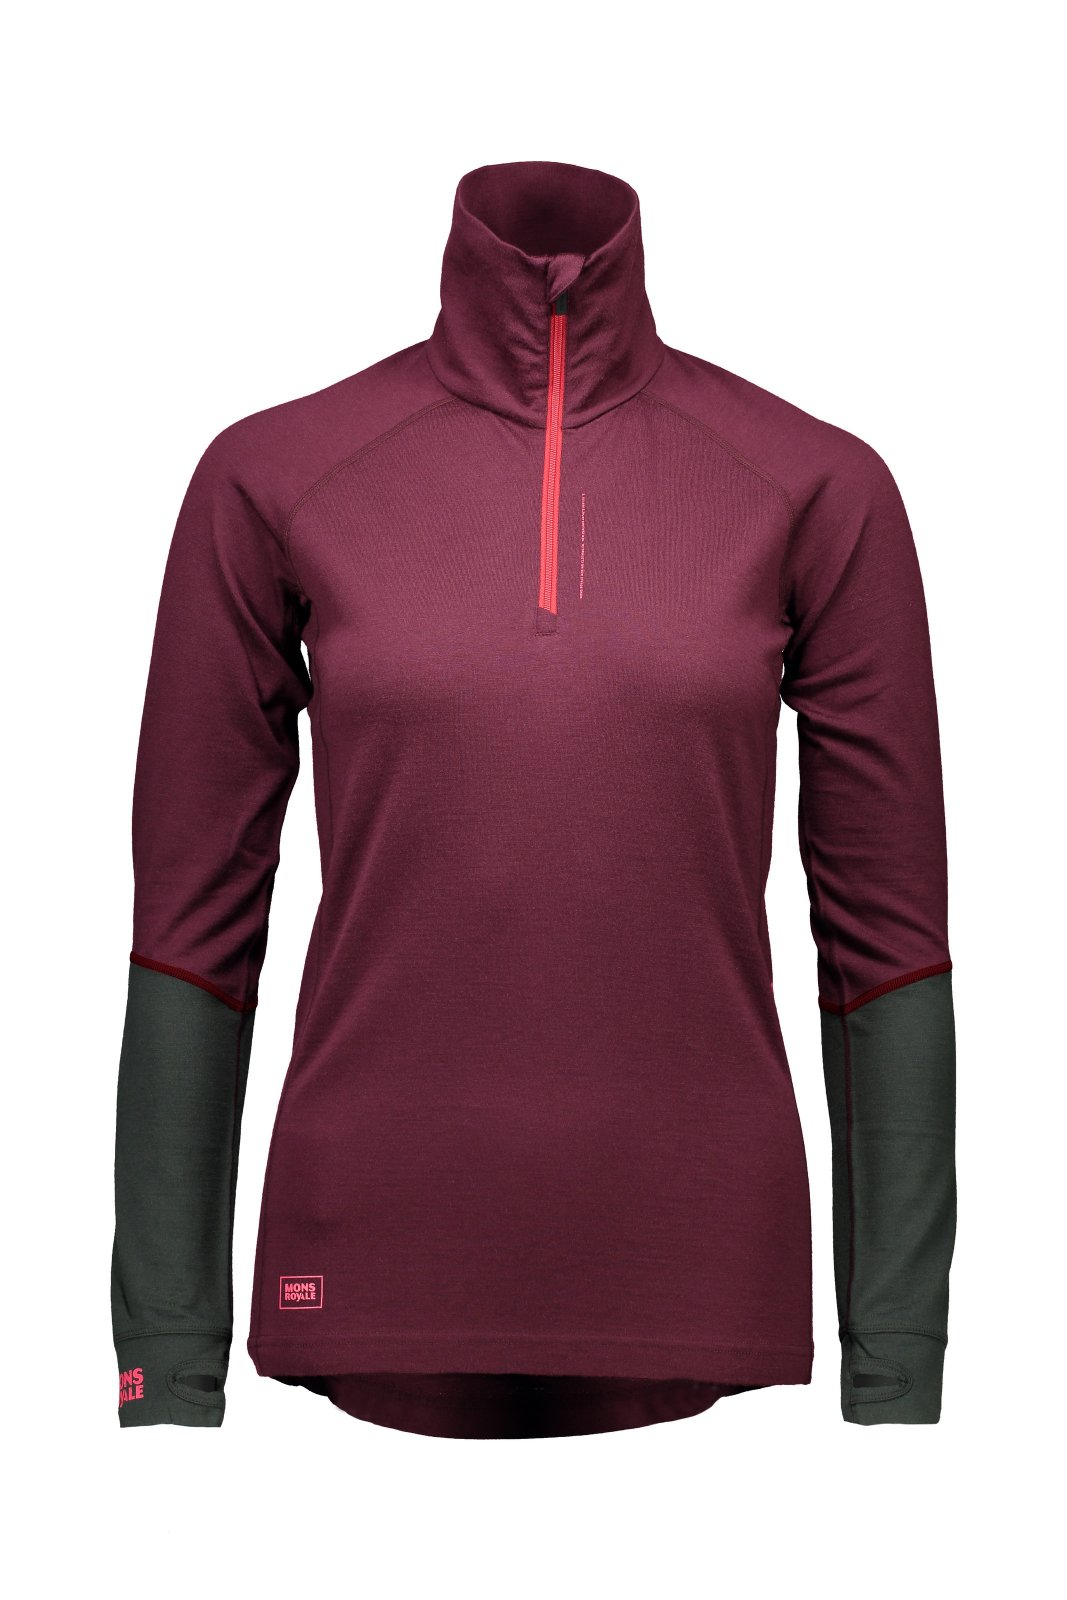 Mons Royale Womens Checklist LS 1/4 Zip 17/18